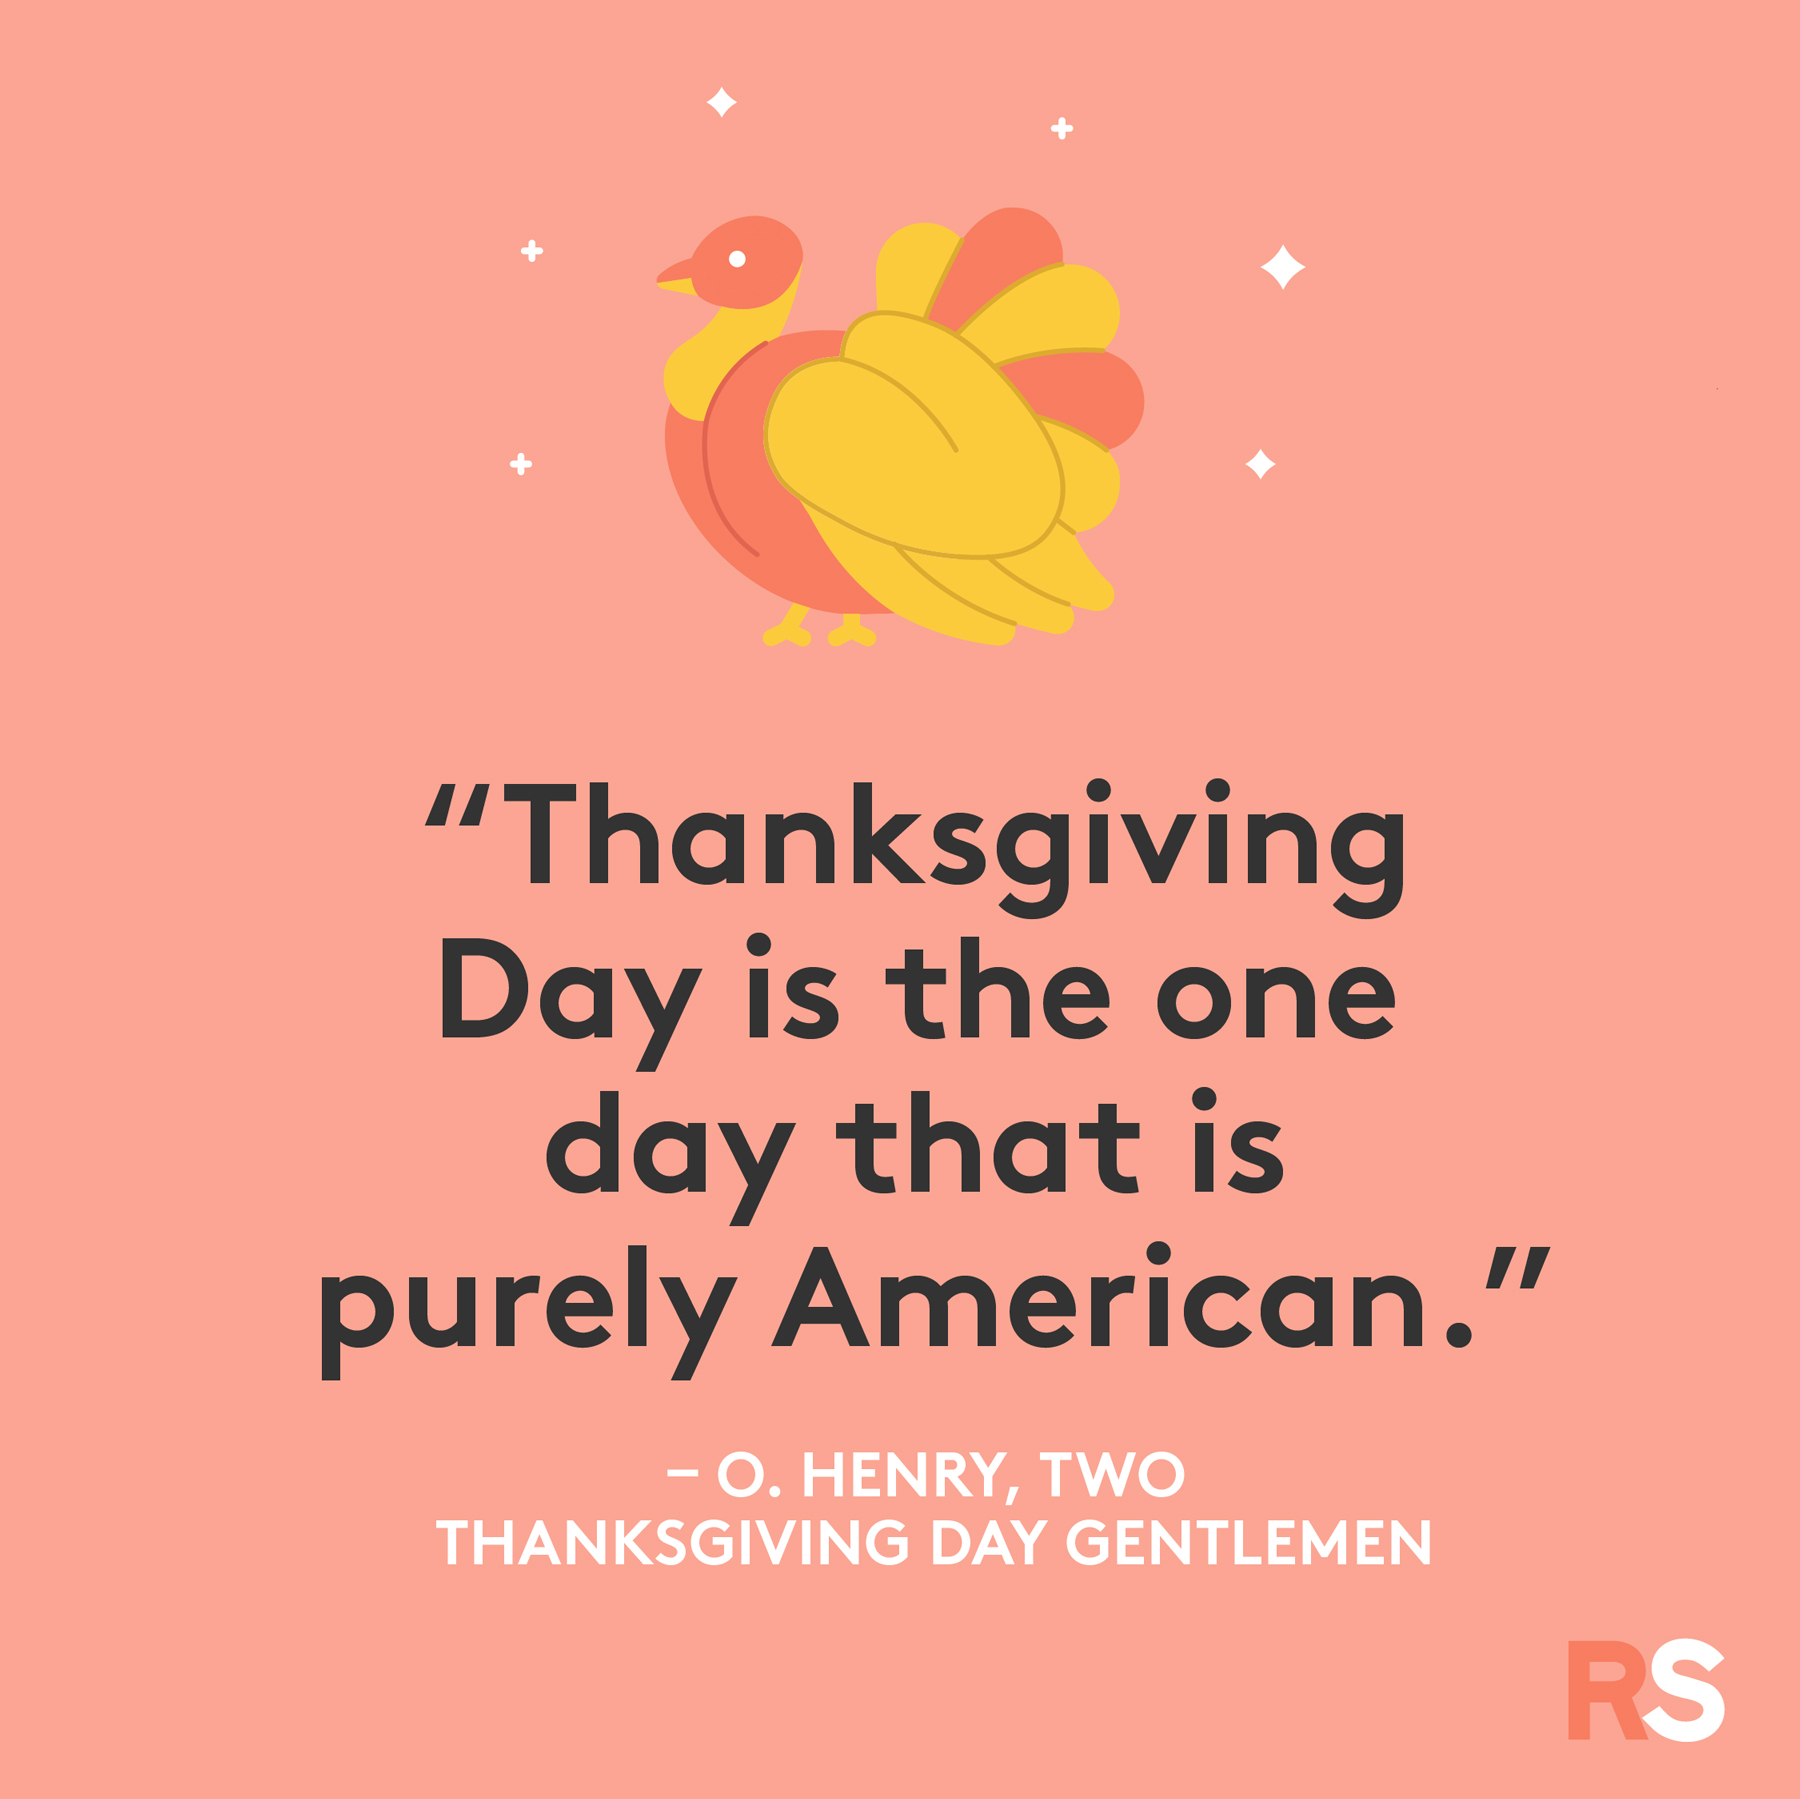 Inspirational, thankful Thanksgiving quotes - O. Henry